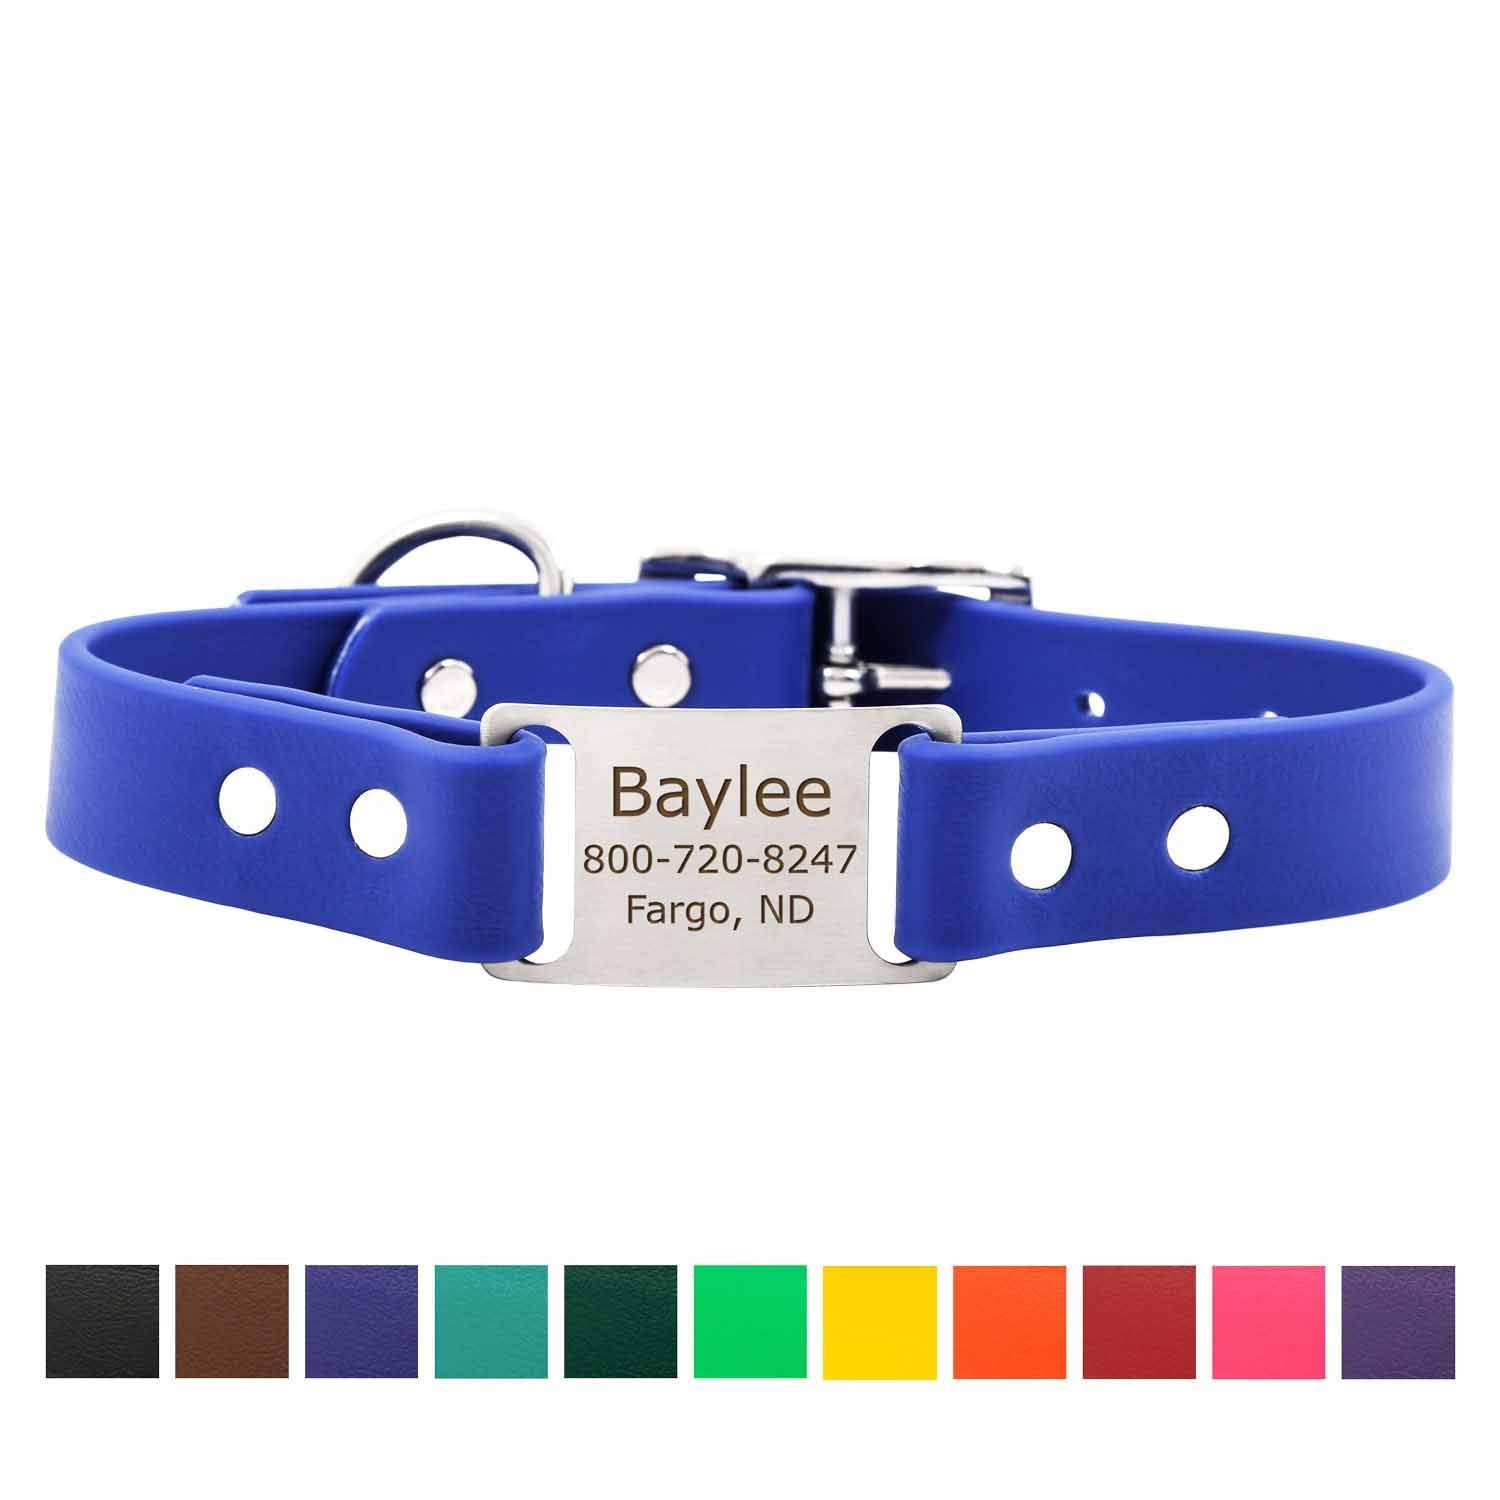 dogIDS Blue Personalized Waterproof Dog Collar with Engraved ScruffTag Nameplate - Smell Resistant Collar (1 Inch Wide - Fits Neck Sizes of 16-20 Inches) by dogIDS